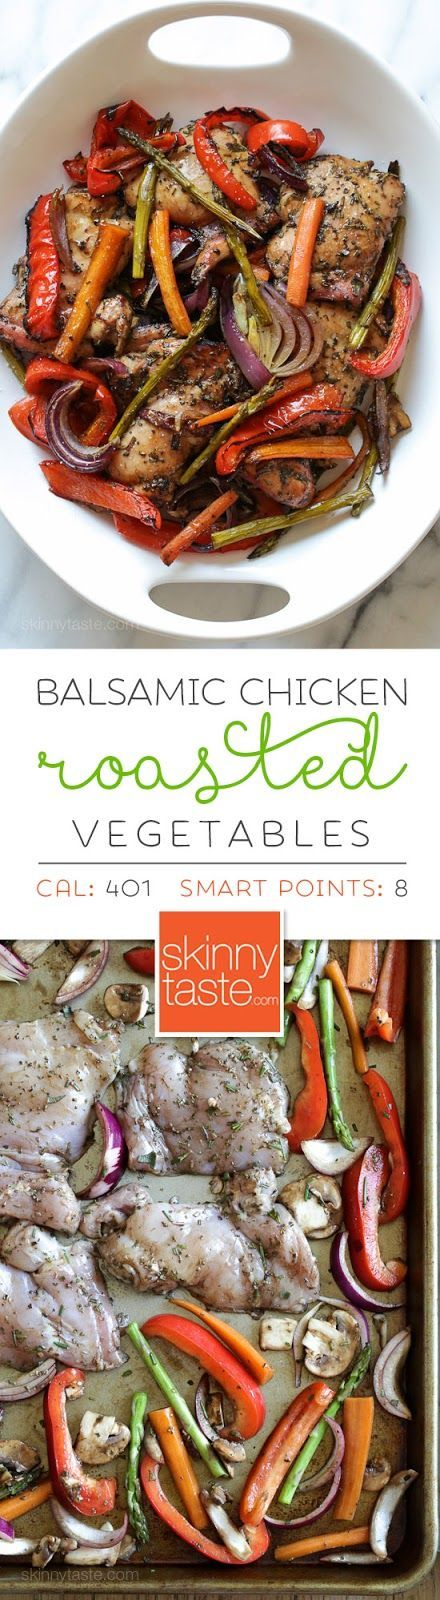 Balsamic Chicken with Roasted Vegetables. I am so addicted to balsamic dressing right now!